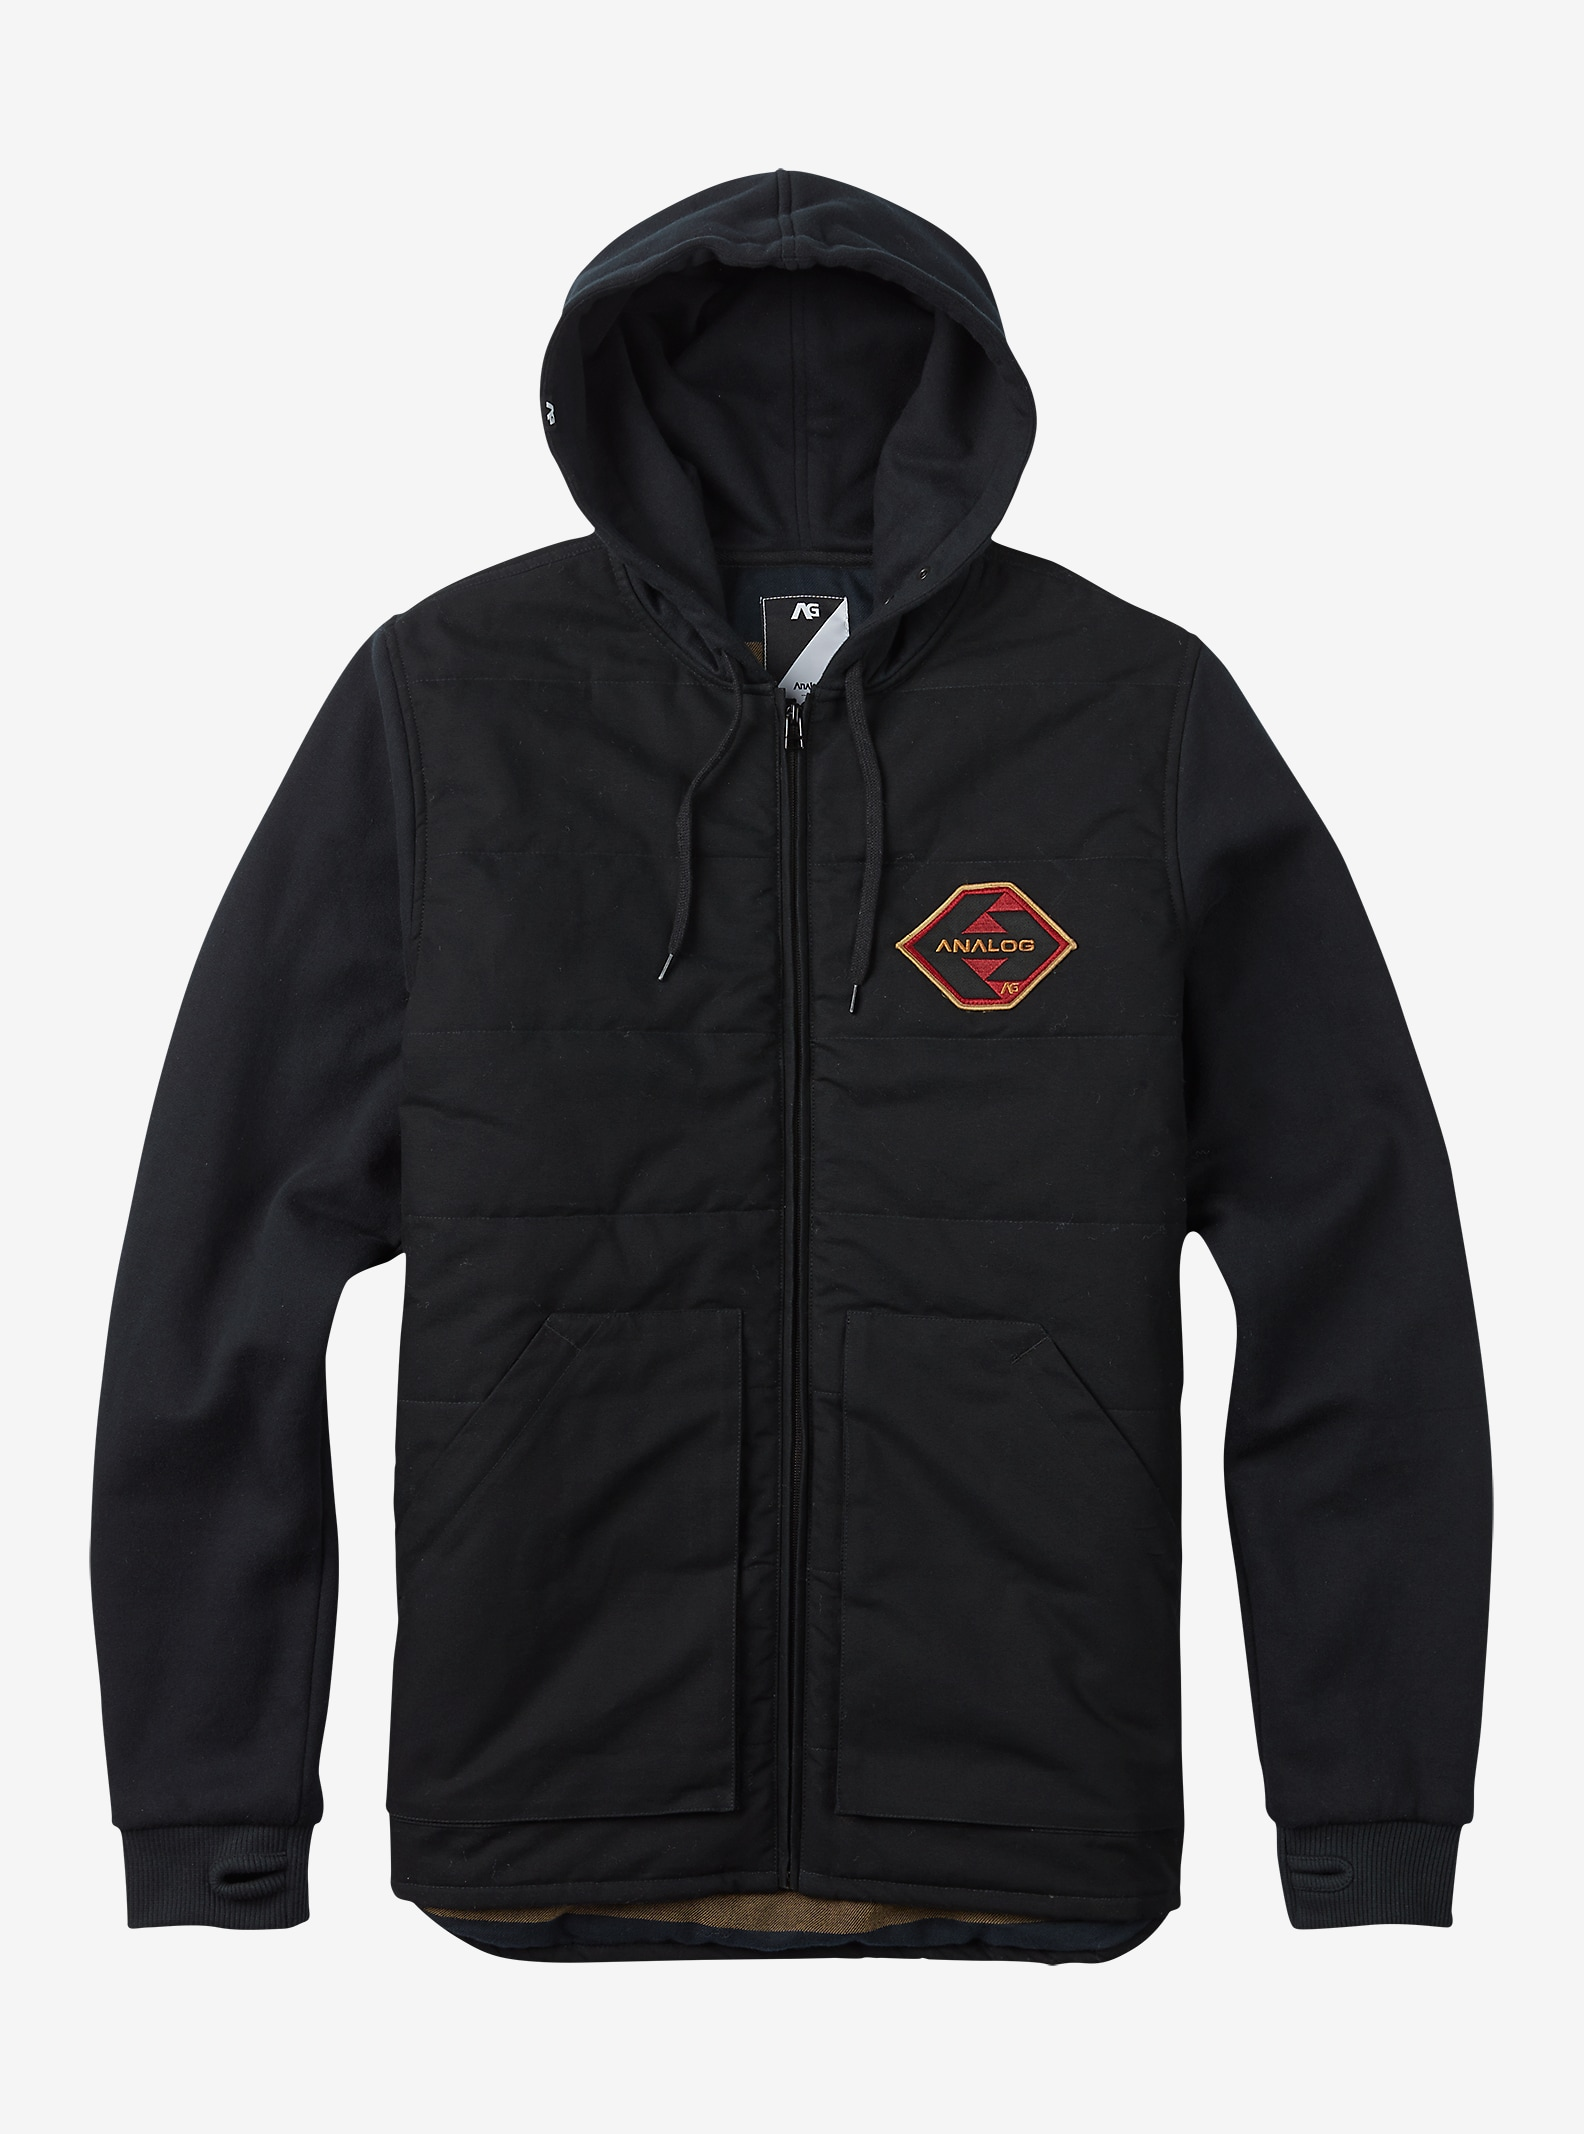 Analog Affiliate Jacket shown in True Black